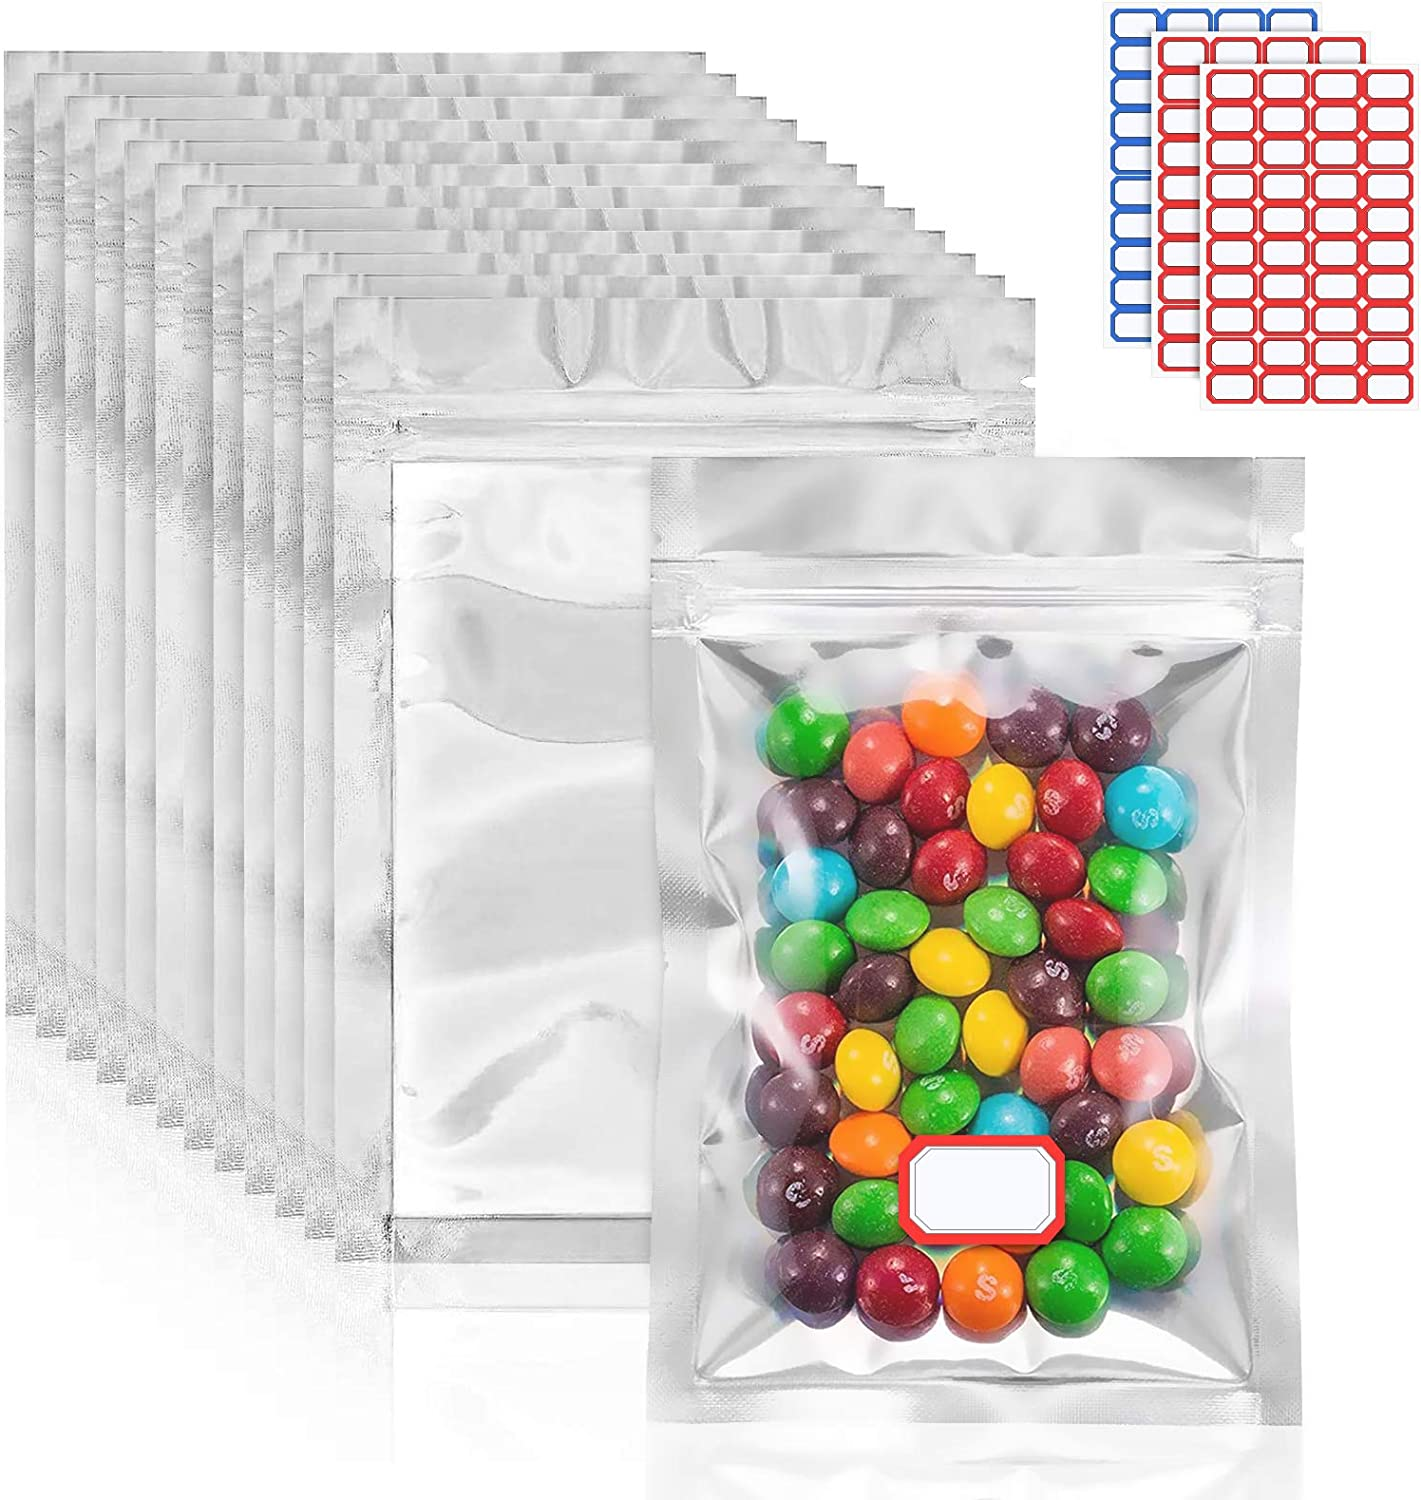 100 Pieces Mylar Bag for Food Storage, Resealable Foil Ziplock Bags with 120 Label Stickers, Smell Proof Bags Packaging Bags for Self Sealing Storage Supplies(4.72in×7.87in)